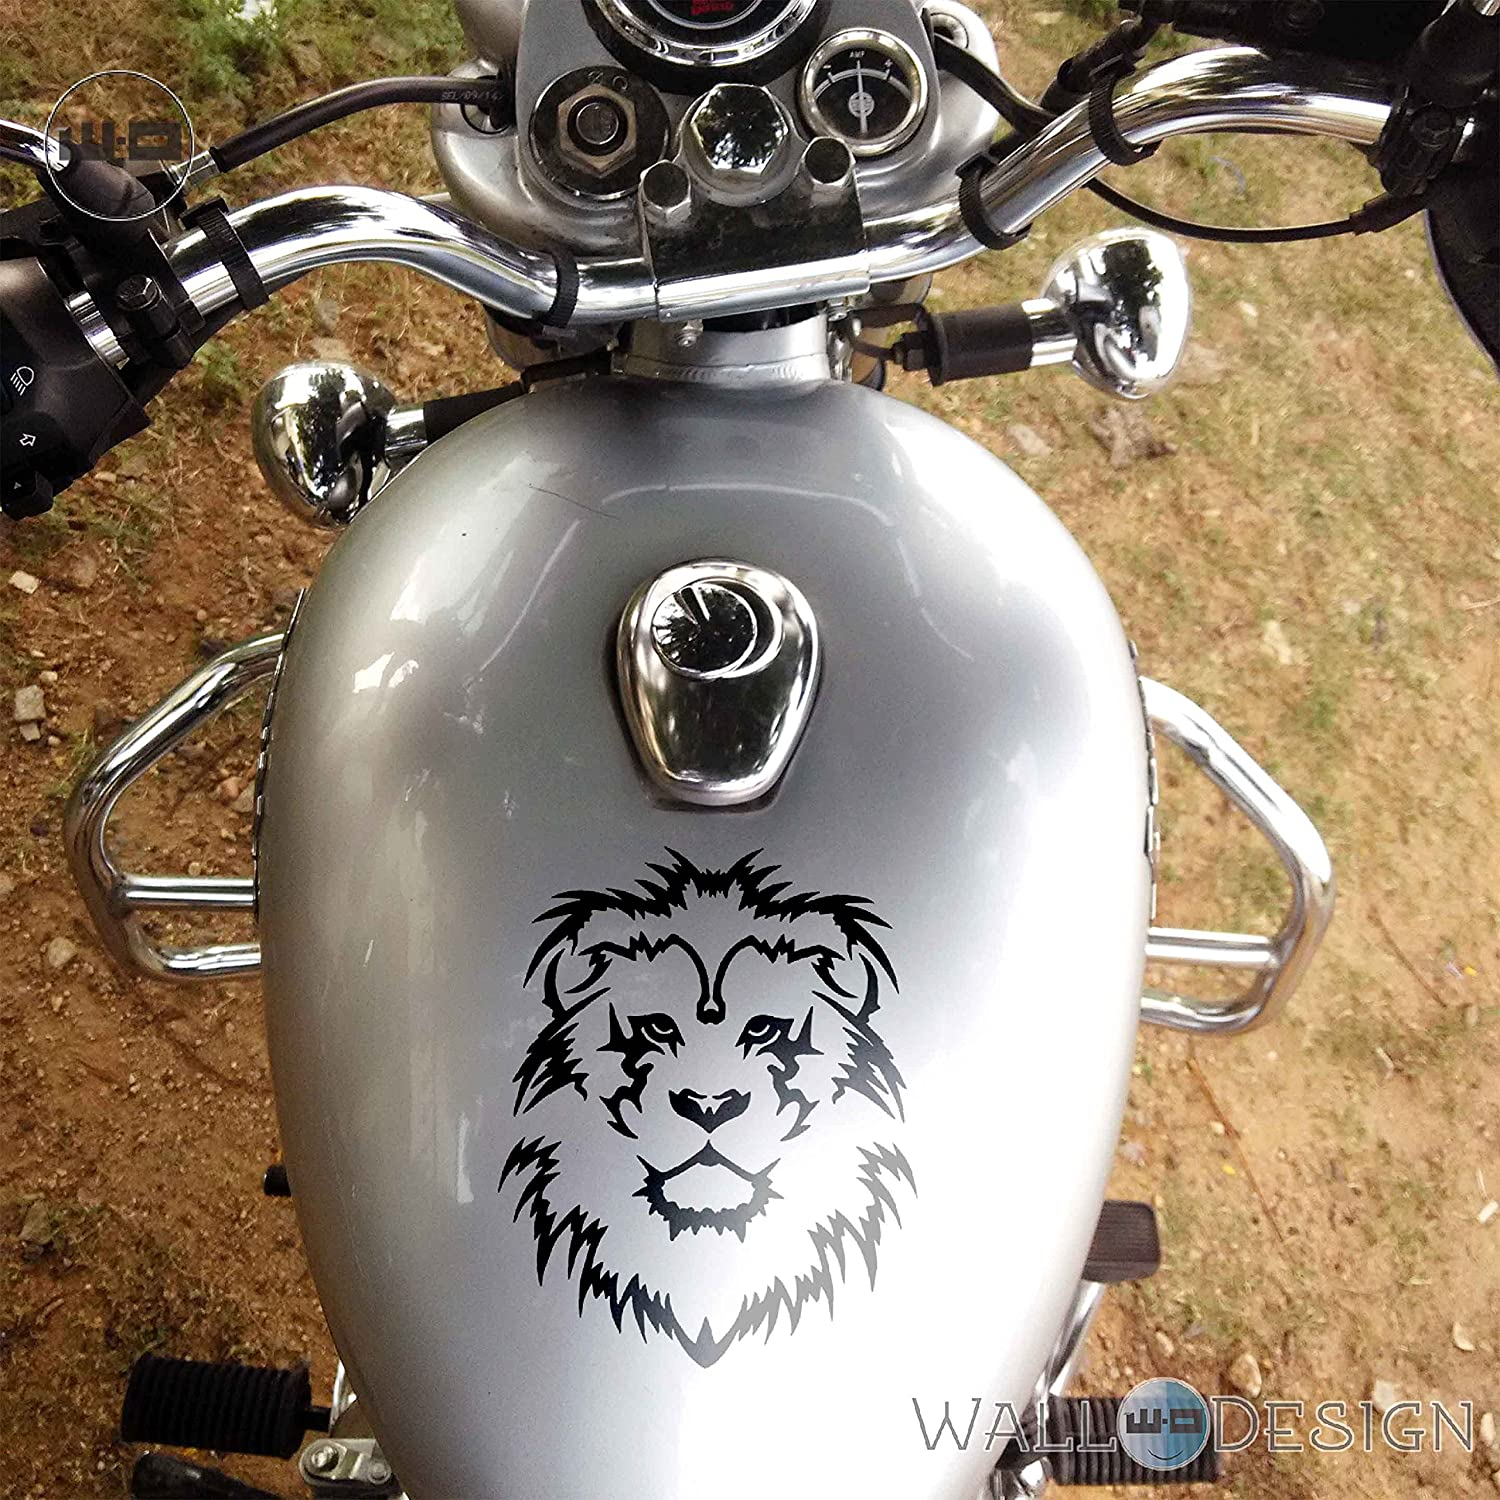 Walldesign radium stickers design for bikes lion king copper colour reflective vinyl amazon in car motorbike